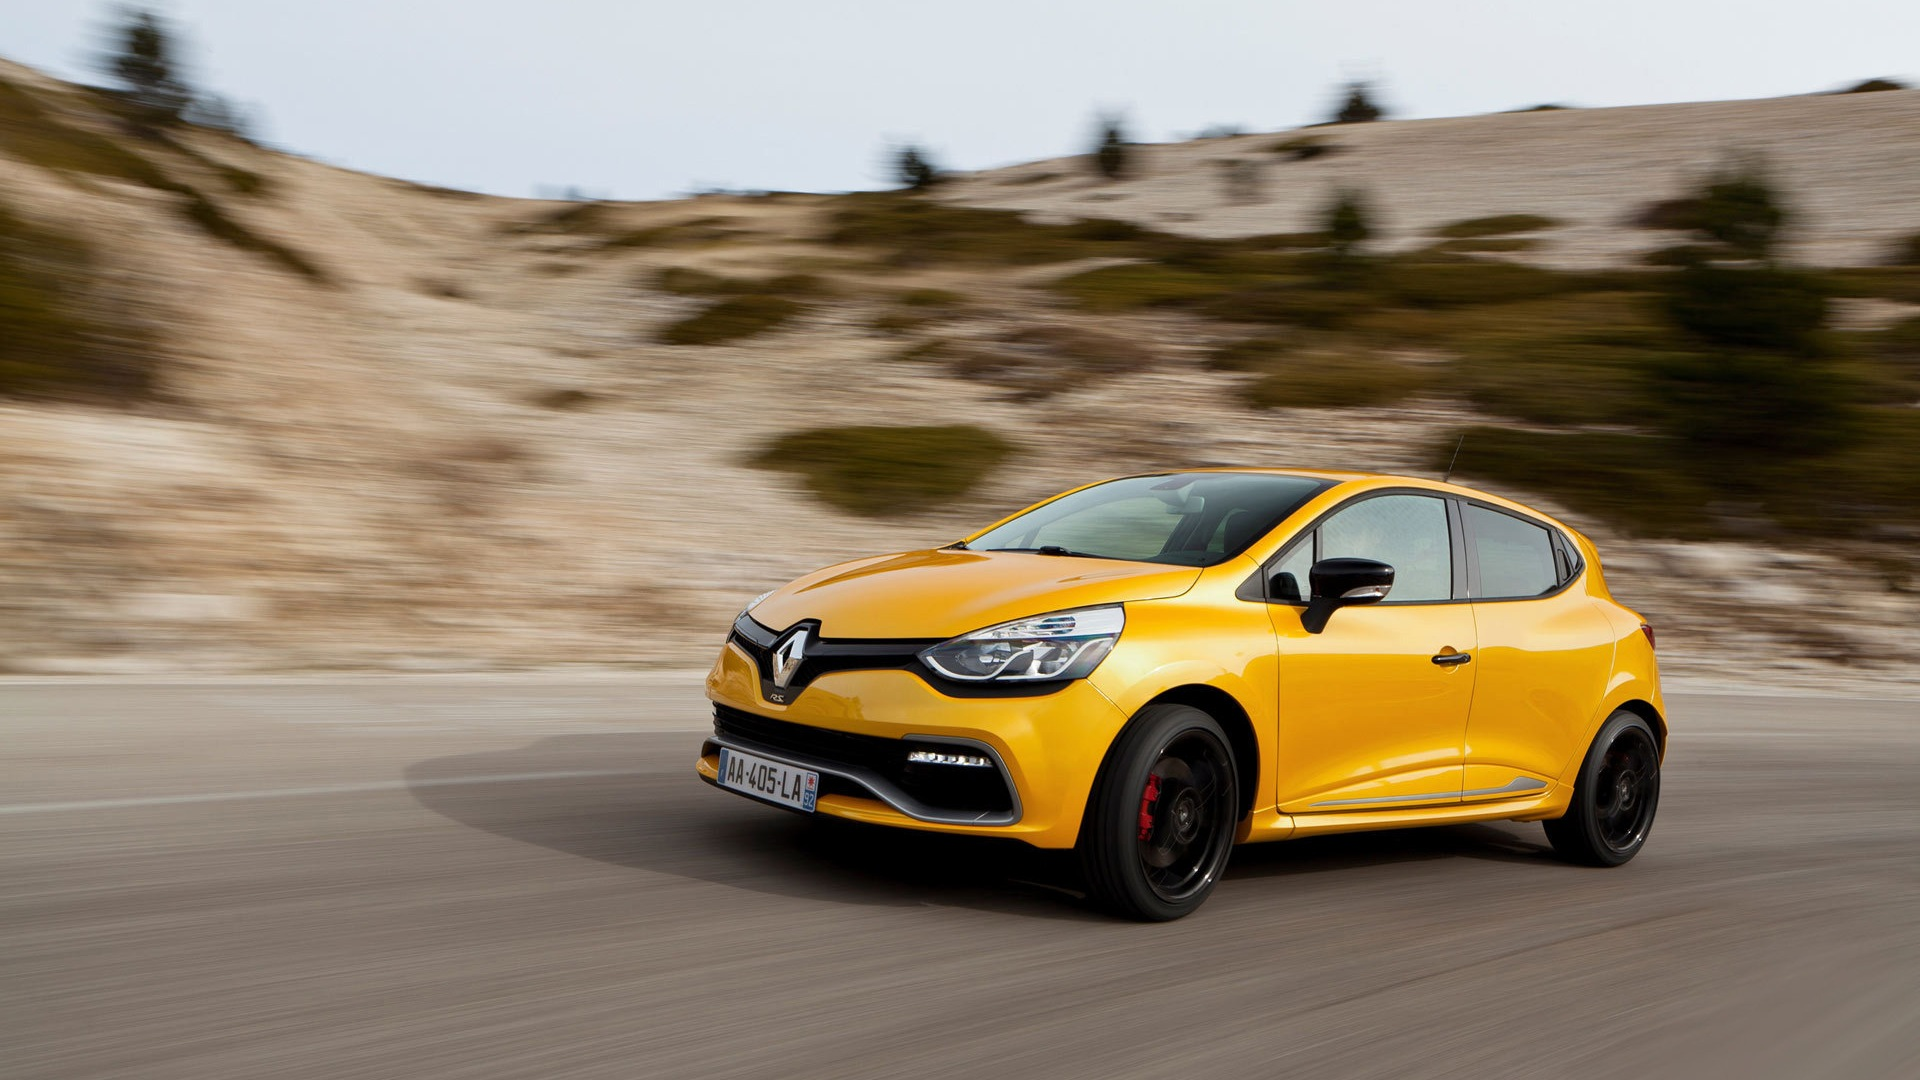 2013 Renault Clio Rs 200 Yellow Color Car Hd Wallpapers 2 1920x1080 Wallpaper Download 2013 Renault Clio Rs 200 Yellow Color Car Hd Wallpapers Auto Wallpapers V3 Wallpaper Site